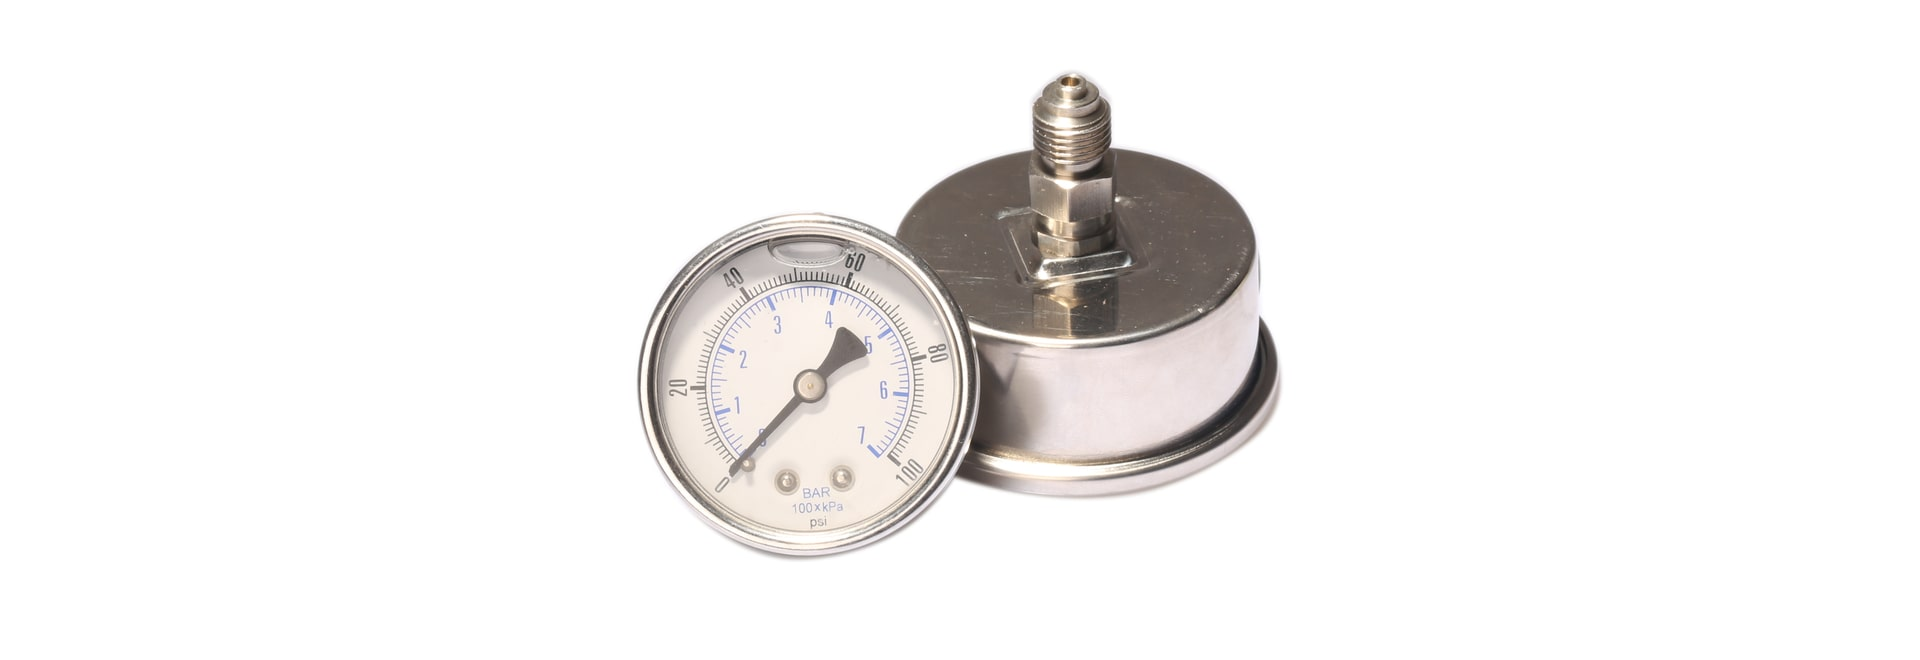 How to re-fill the oil into the pressure gauge